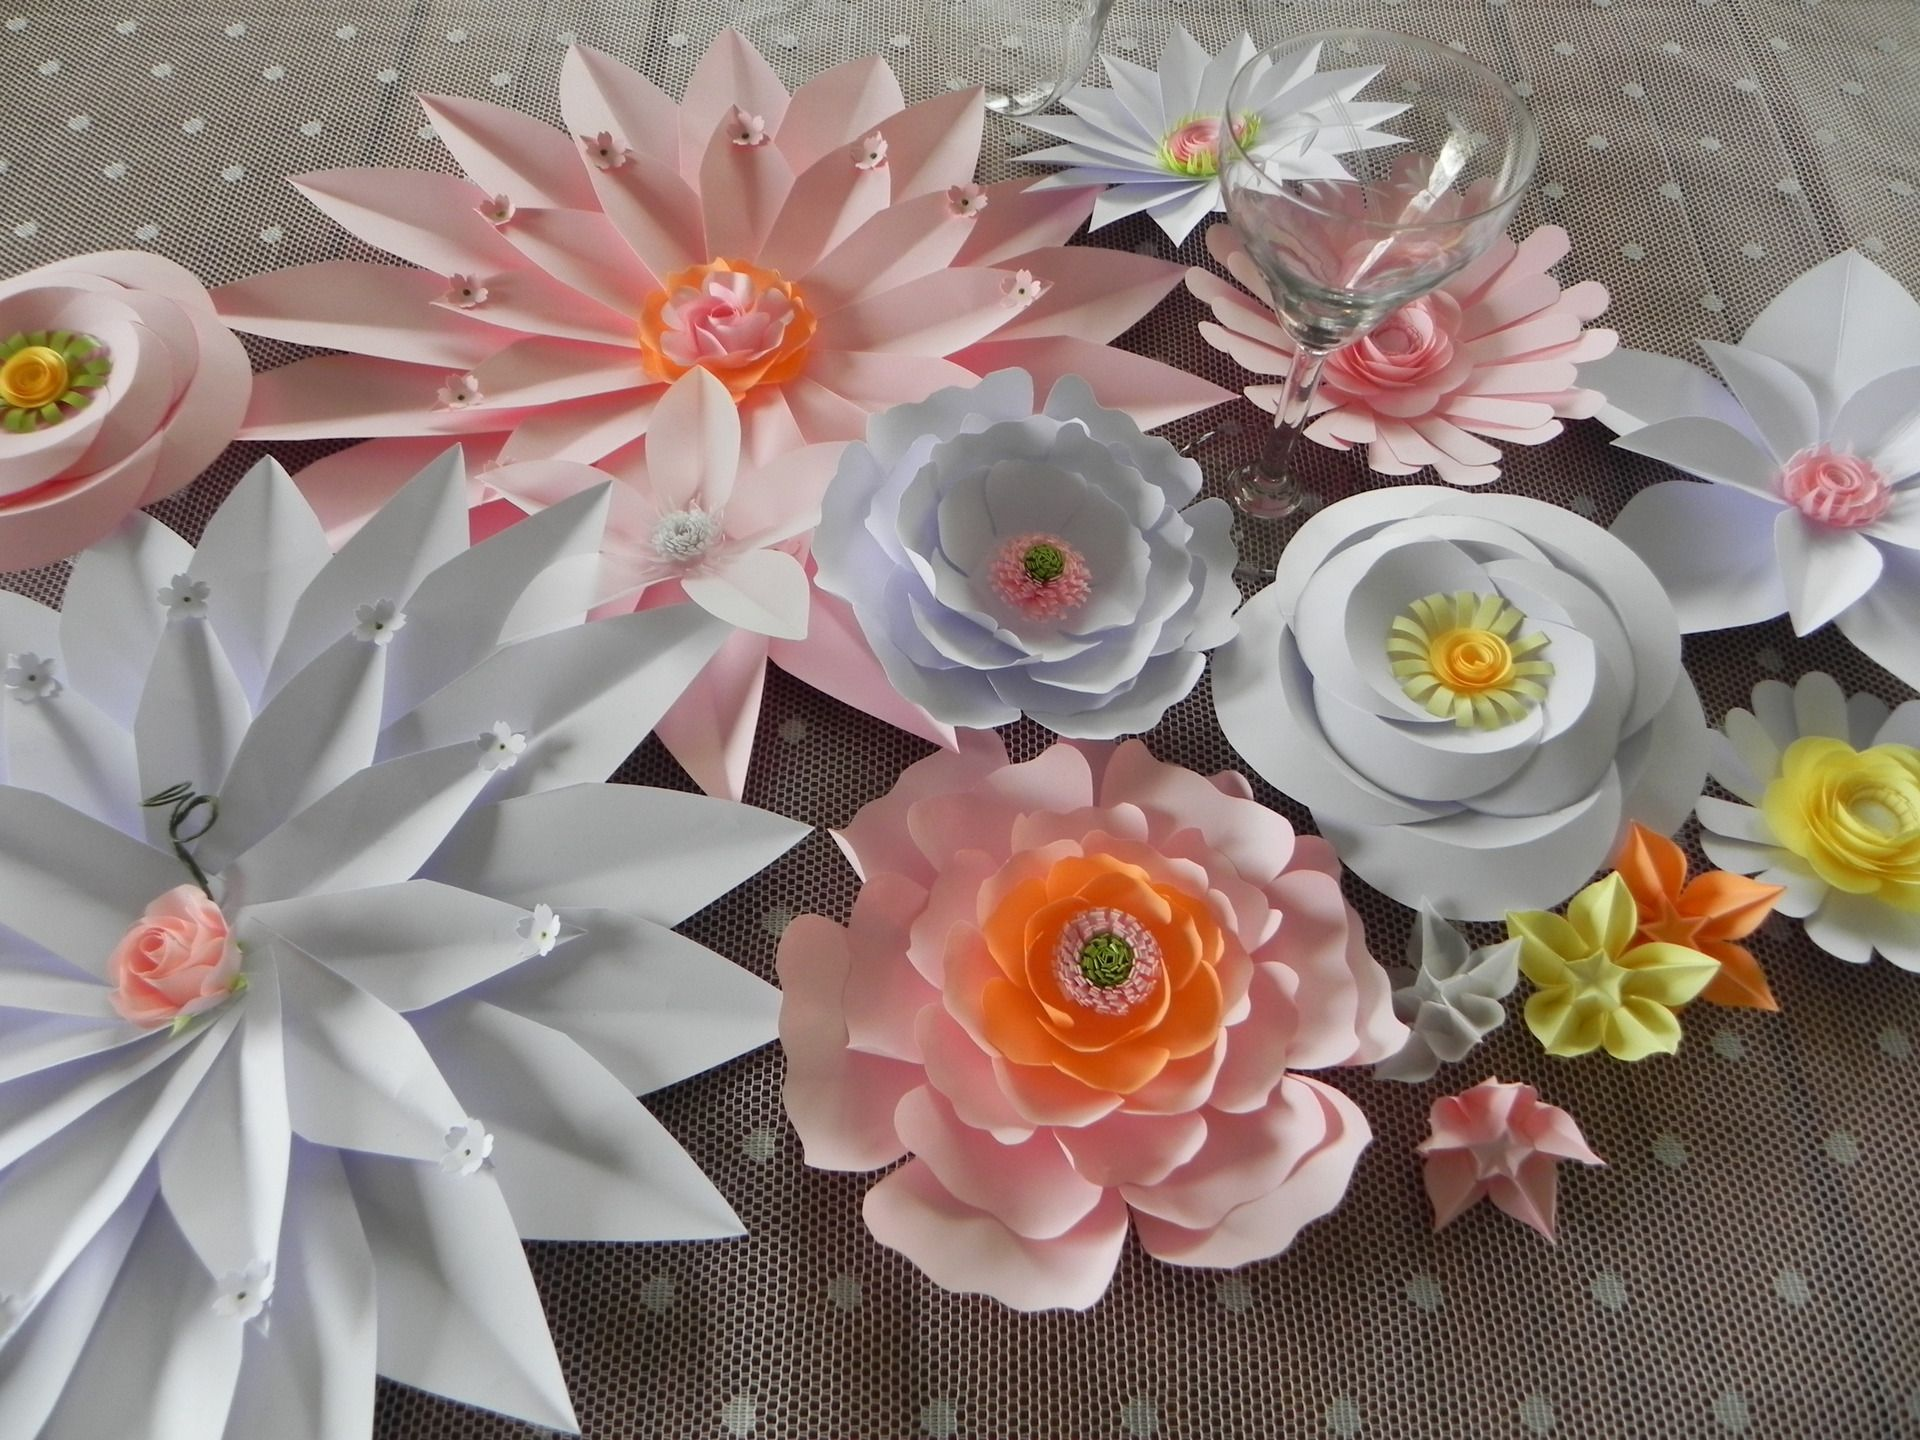 Decoration Mariage Chemin De Table Décoration Chemin De Table Origami Wedding Bouquets